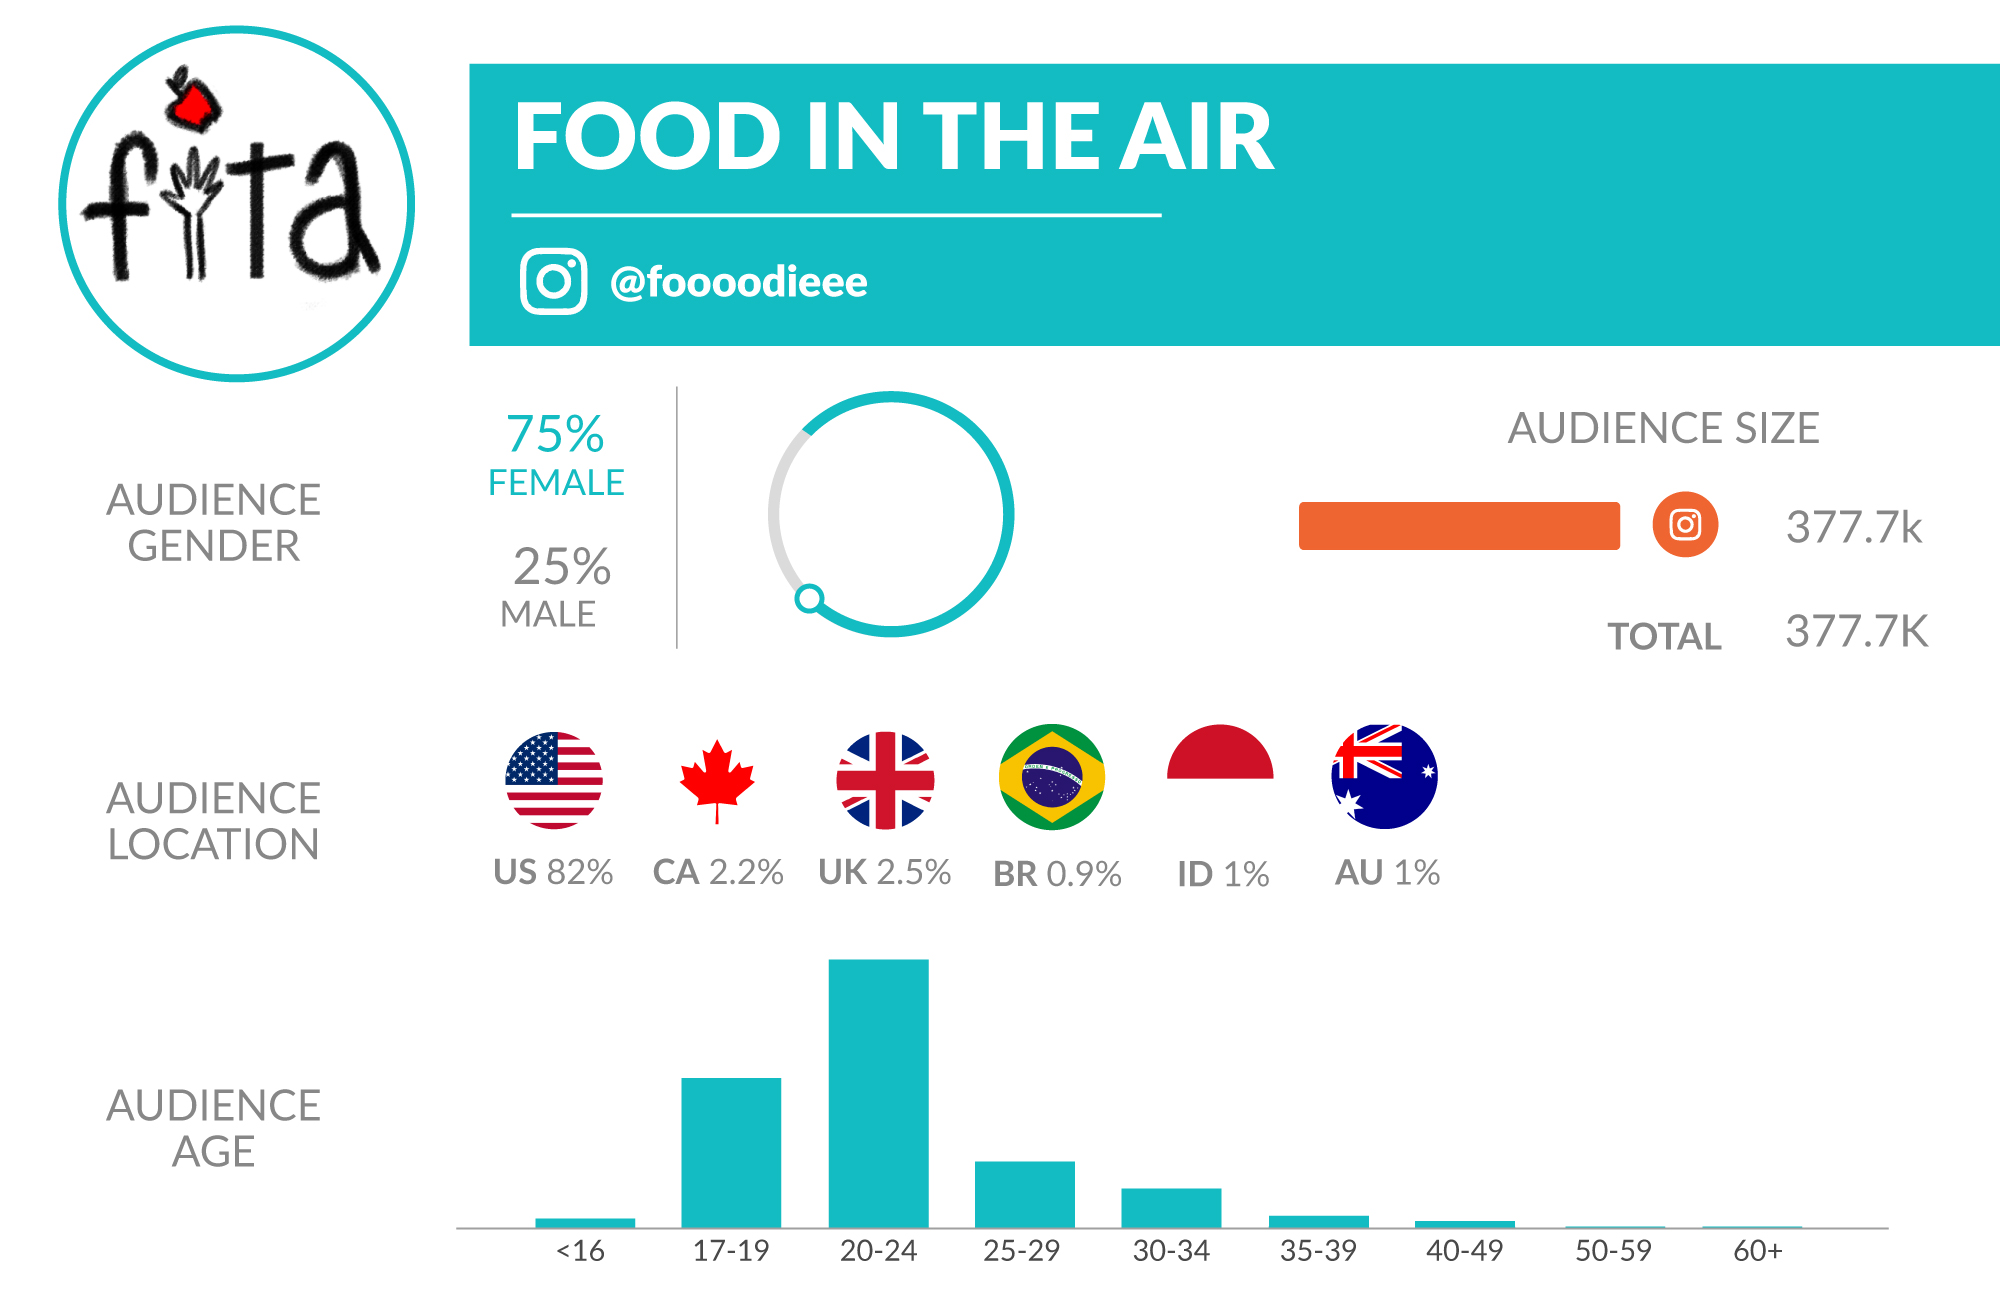 food in the air influencer data card